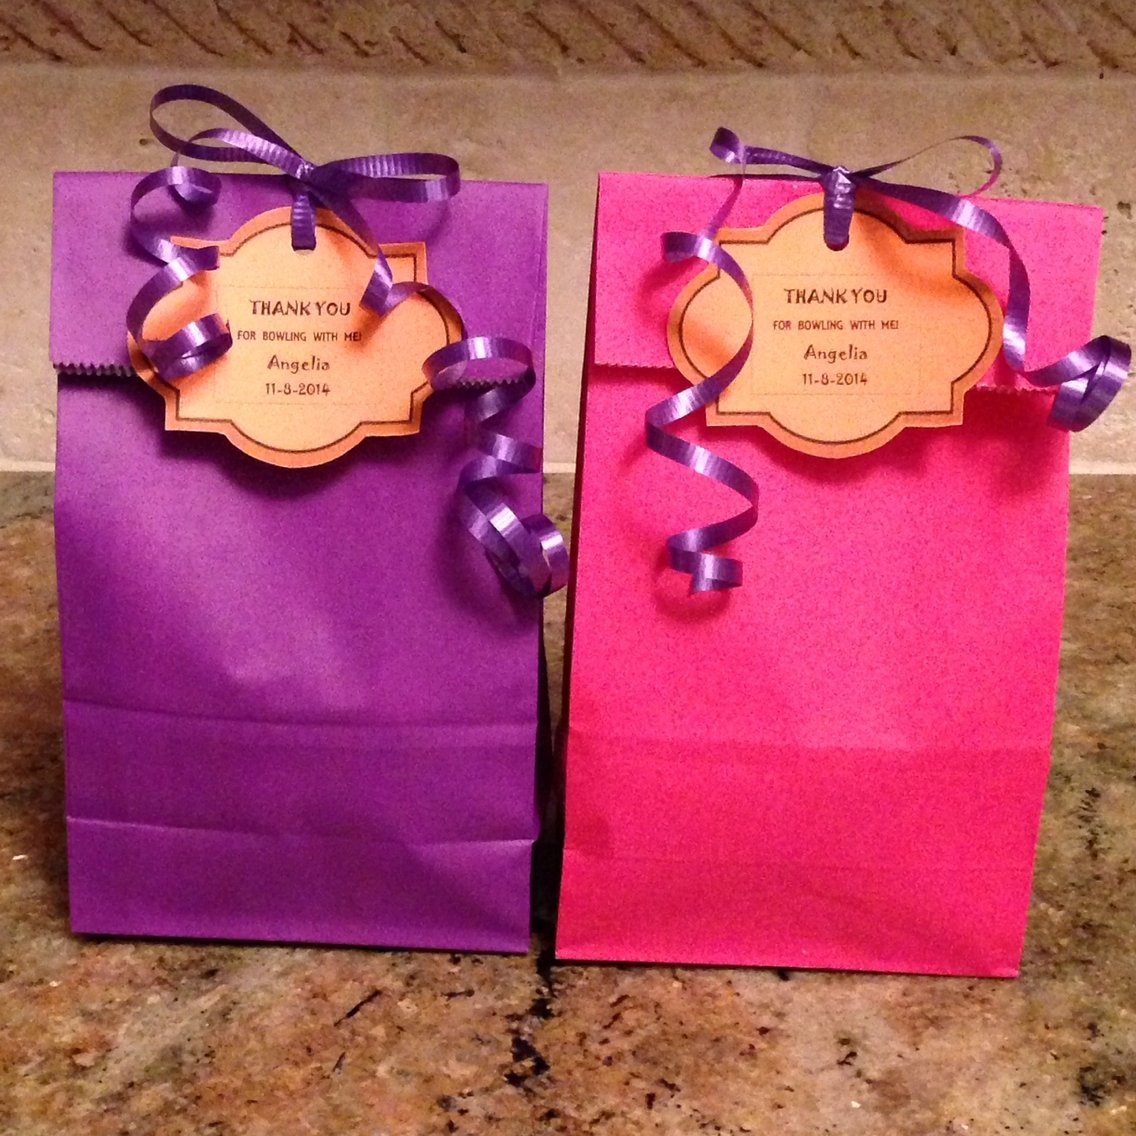 10 Awesome Slumber Party Ideas For 11 Year Olds cute easy affordable treat bags for 10 year old girls parties 2 2020